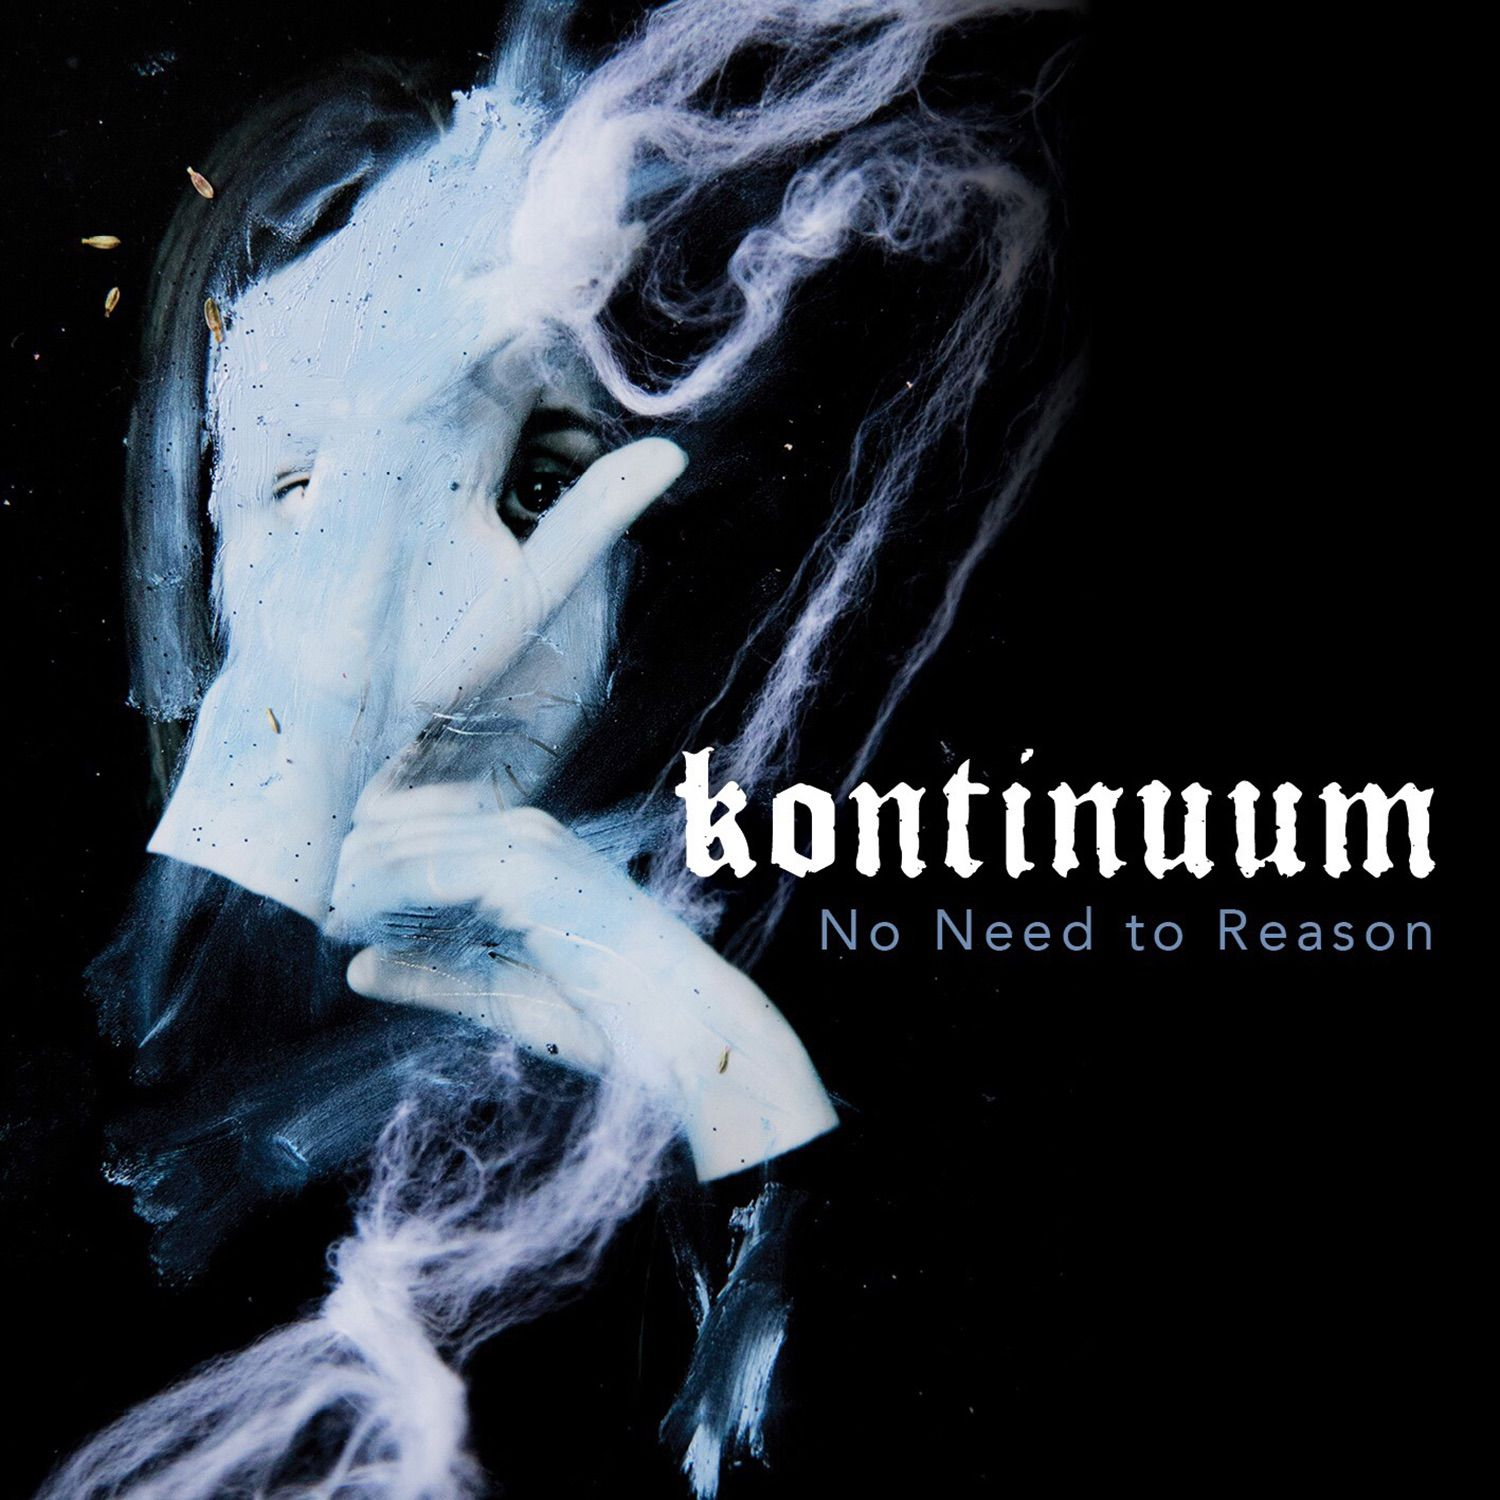 Review for Kontinuum - No Need to Reason